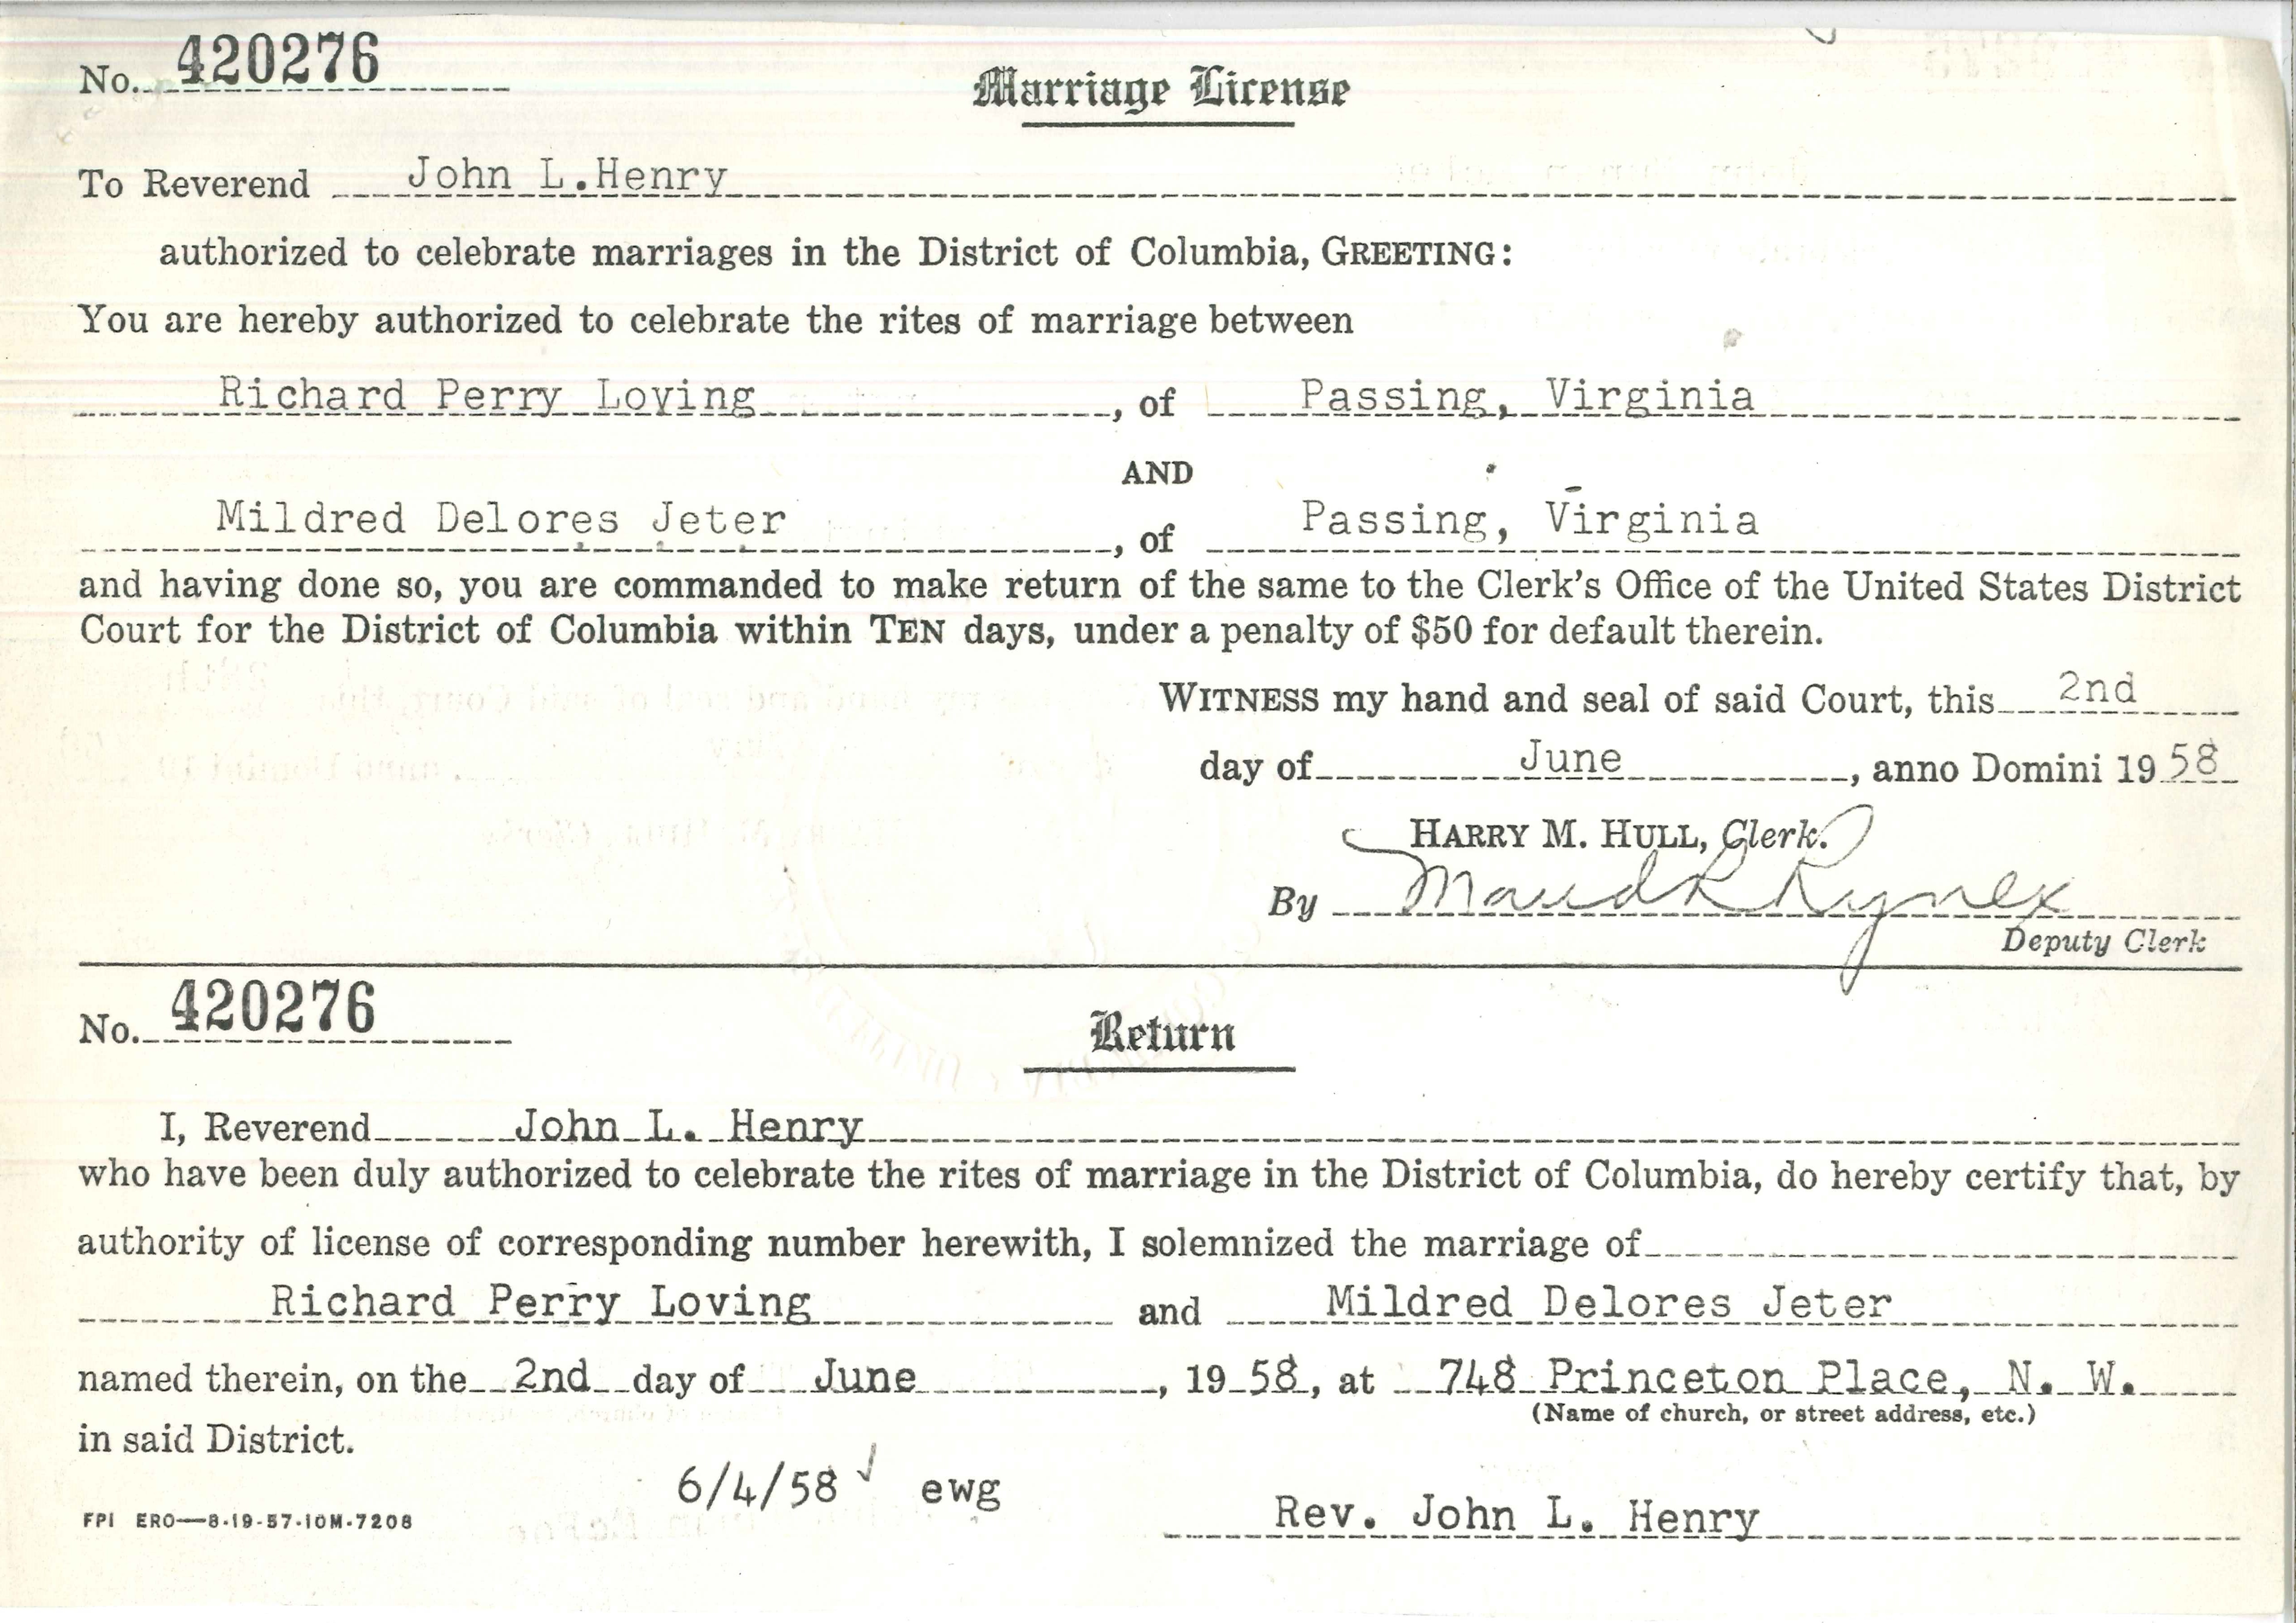 Marriage License For Richard Perry Loving And Mildred Delores Jeter